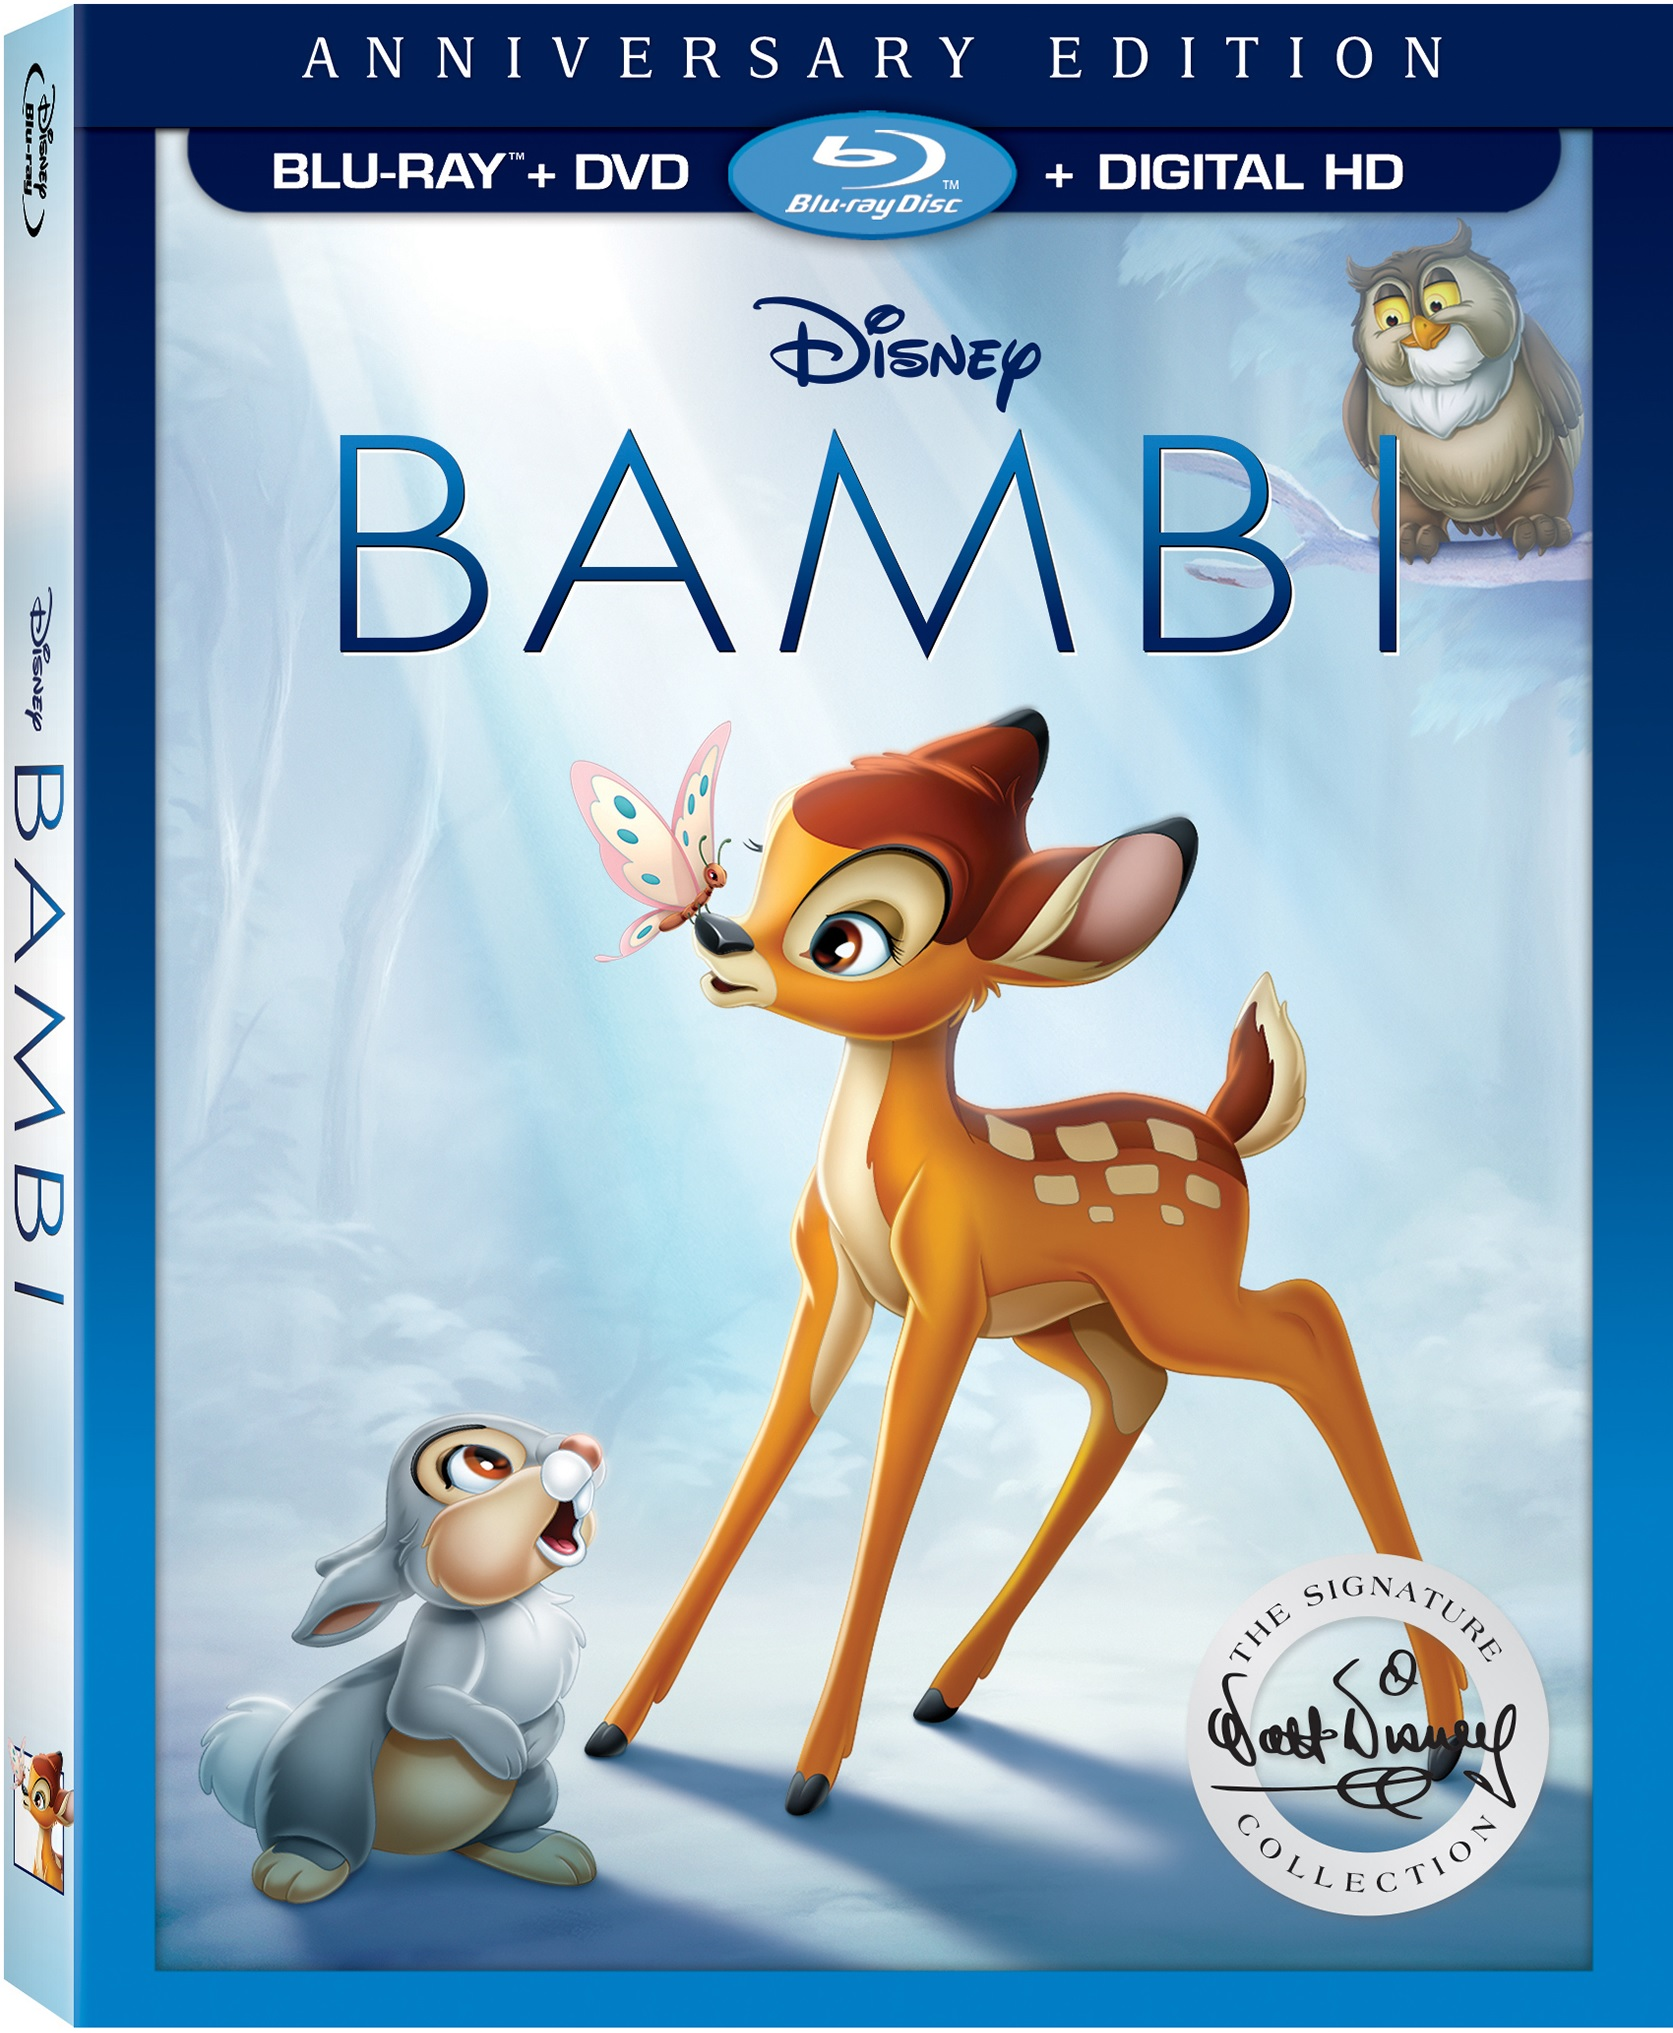 Bambi Blu-ray Review